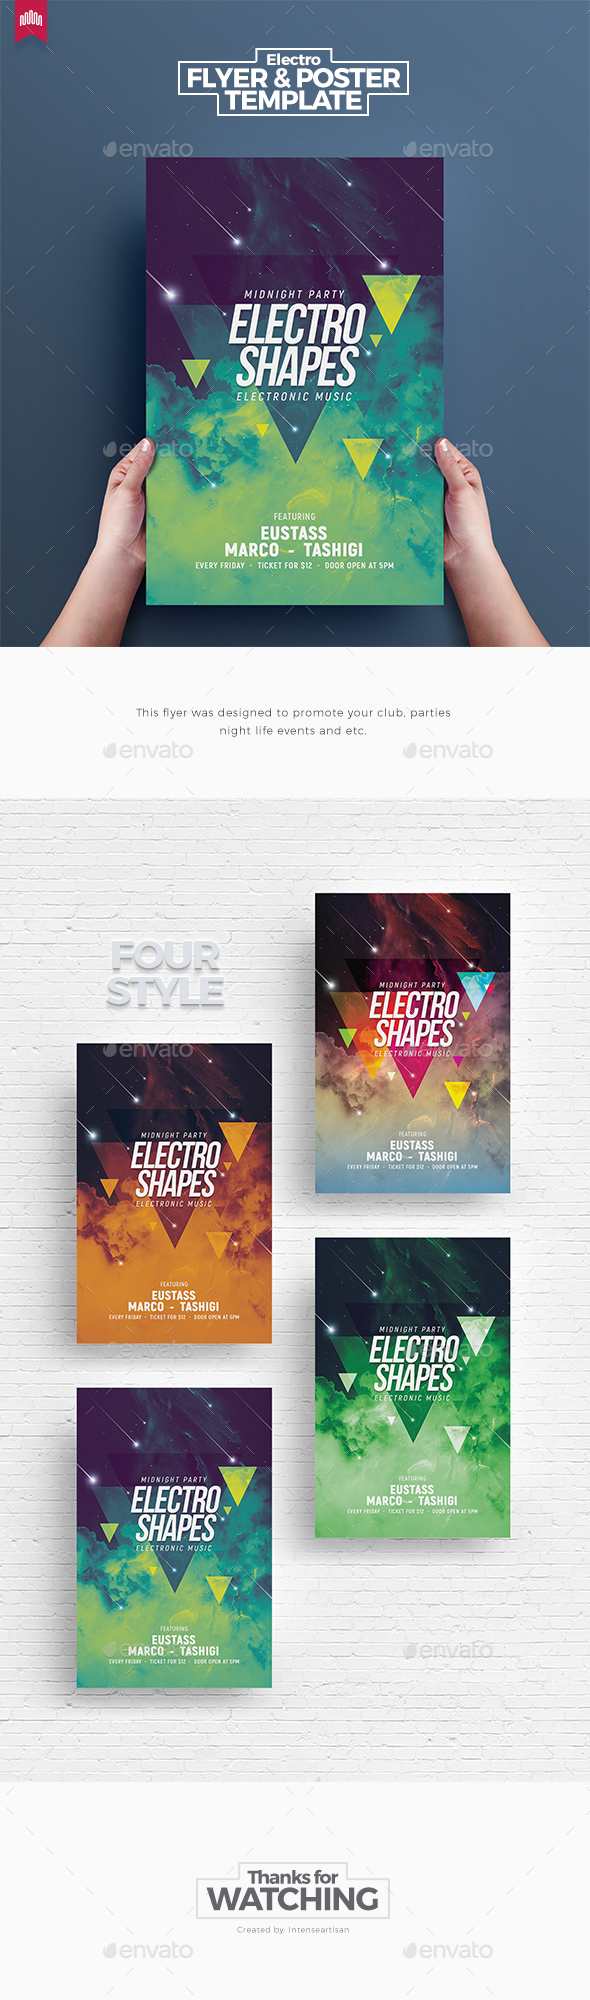 Electro Shapes - Flyer Template - Clubs & Parties Events